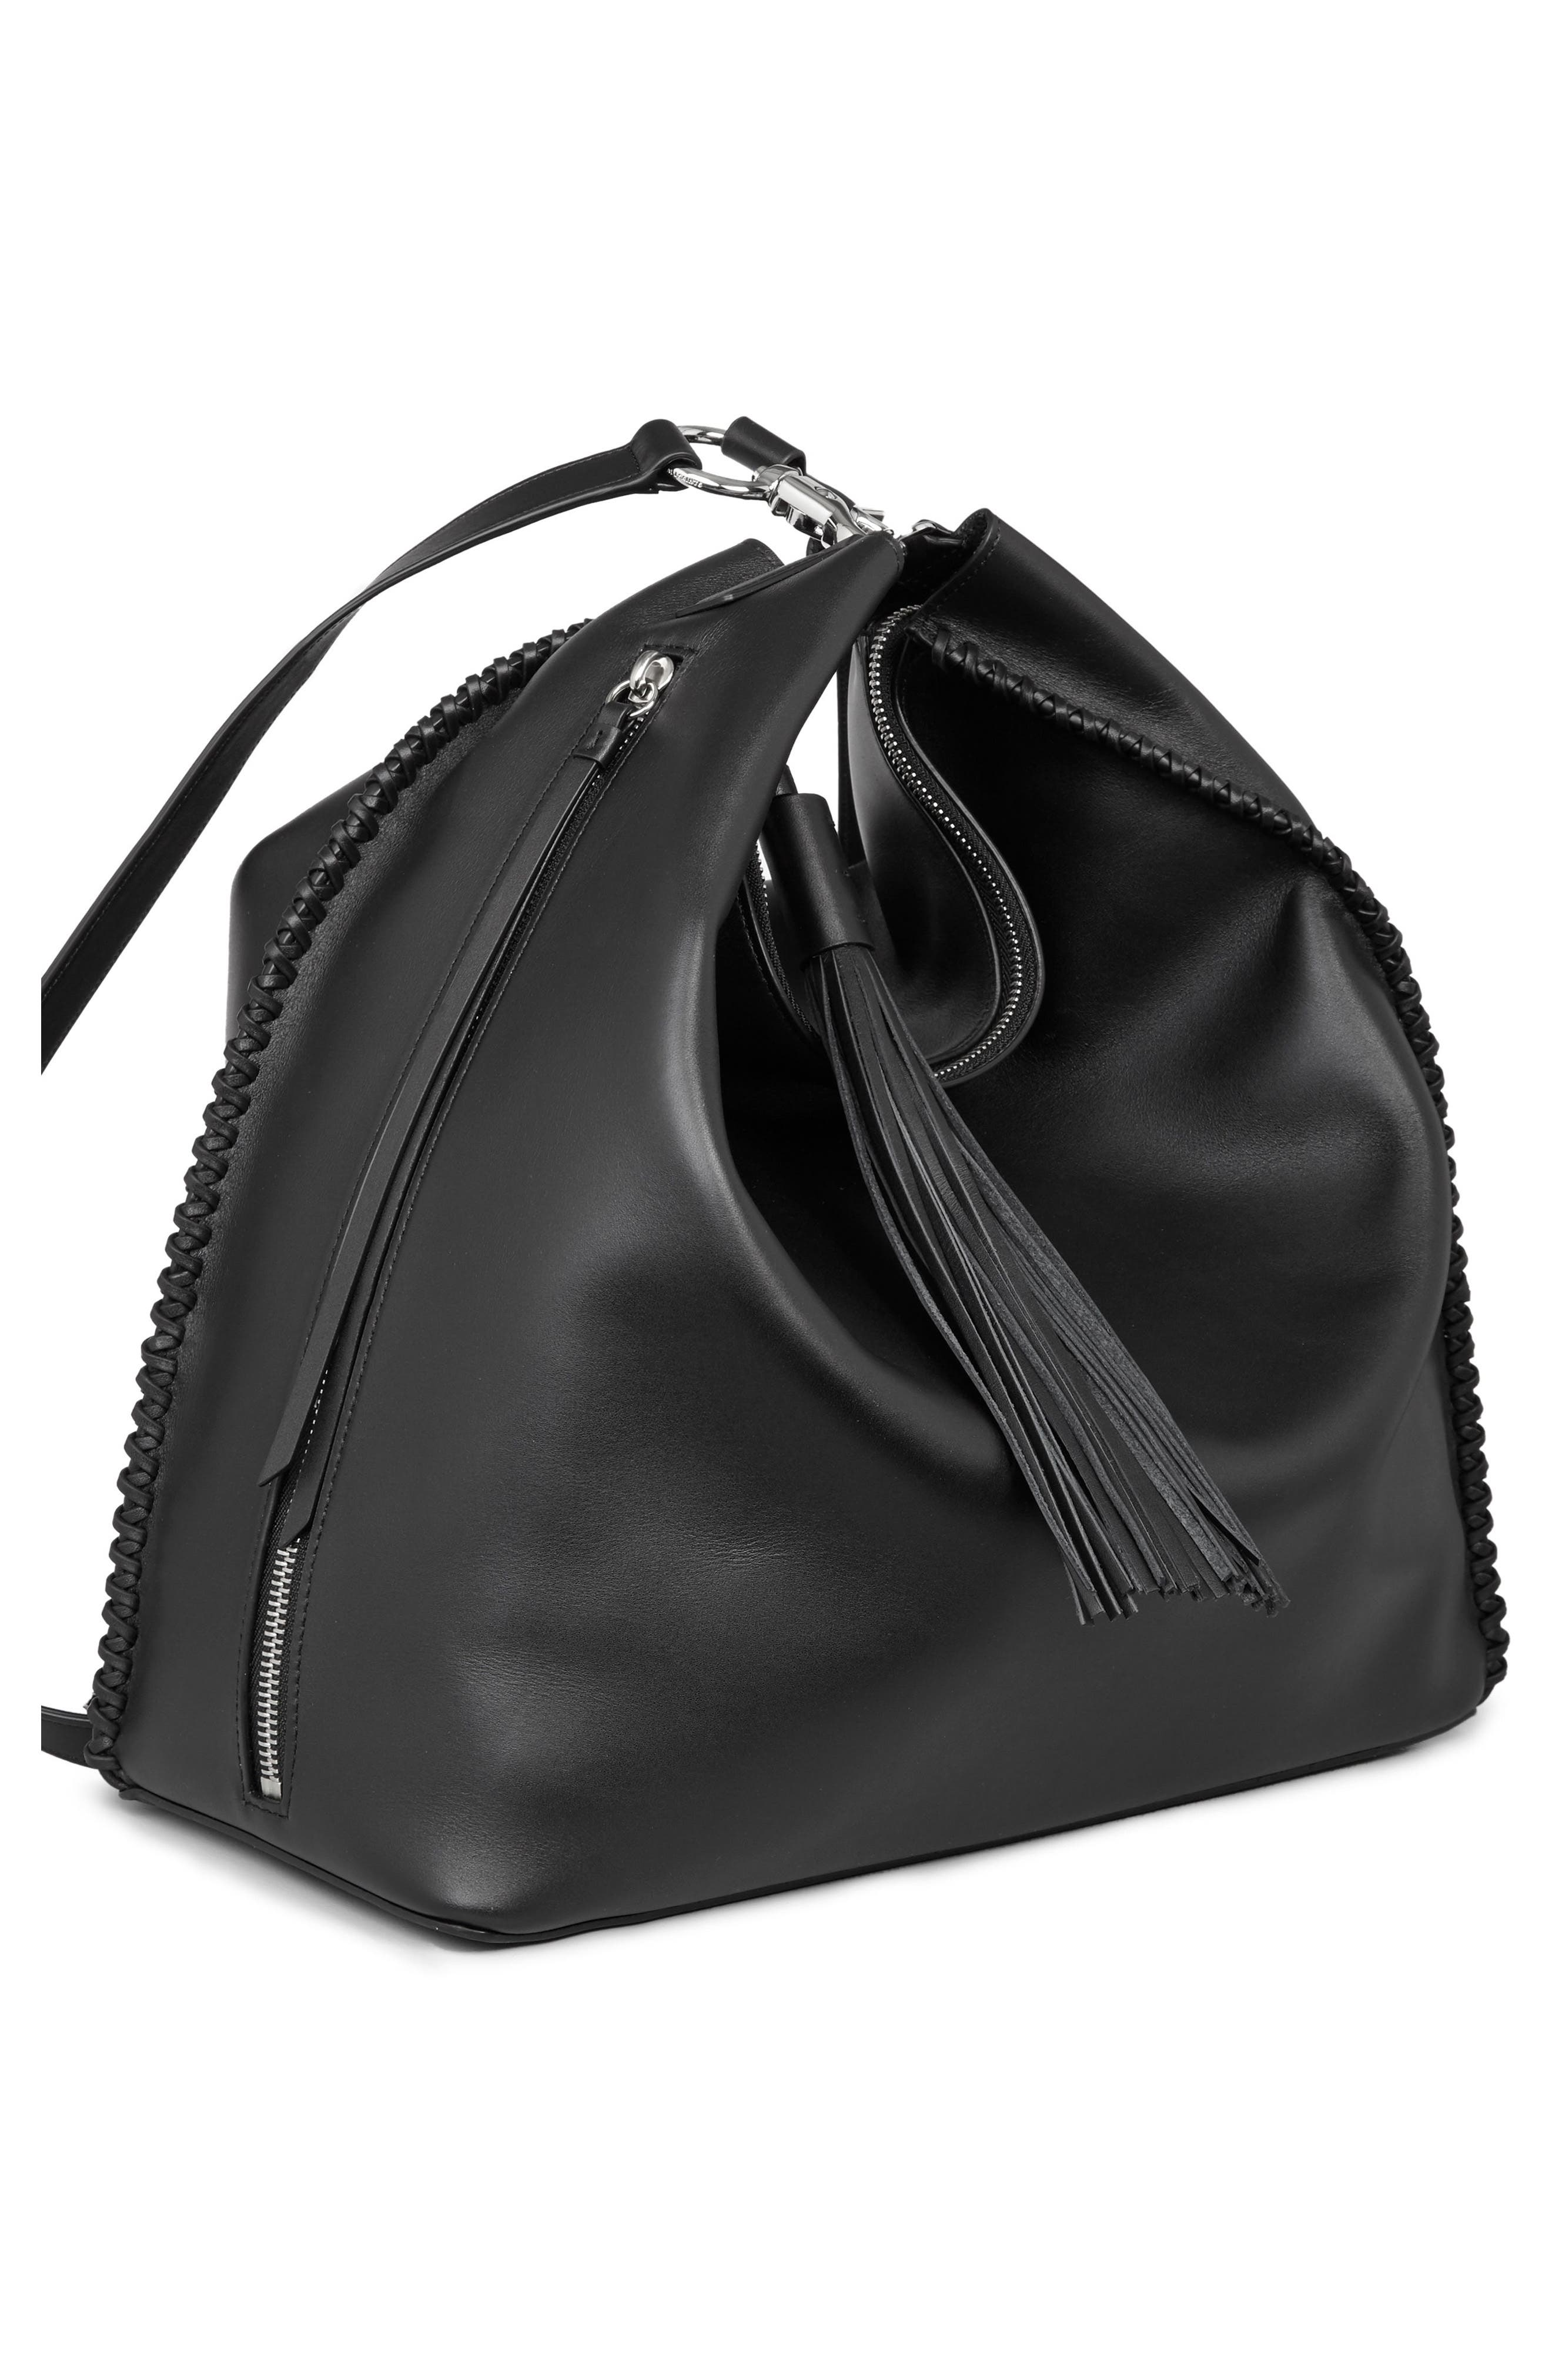 Pearl Convertible Leather Backpack,                             Alternate thumbnail 8, color,                             Black